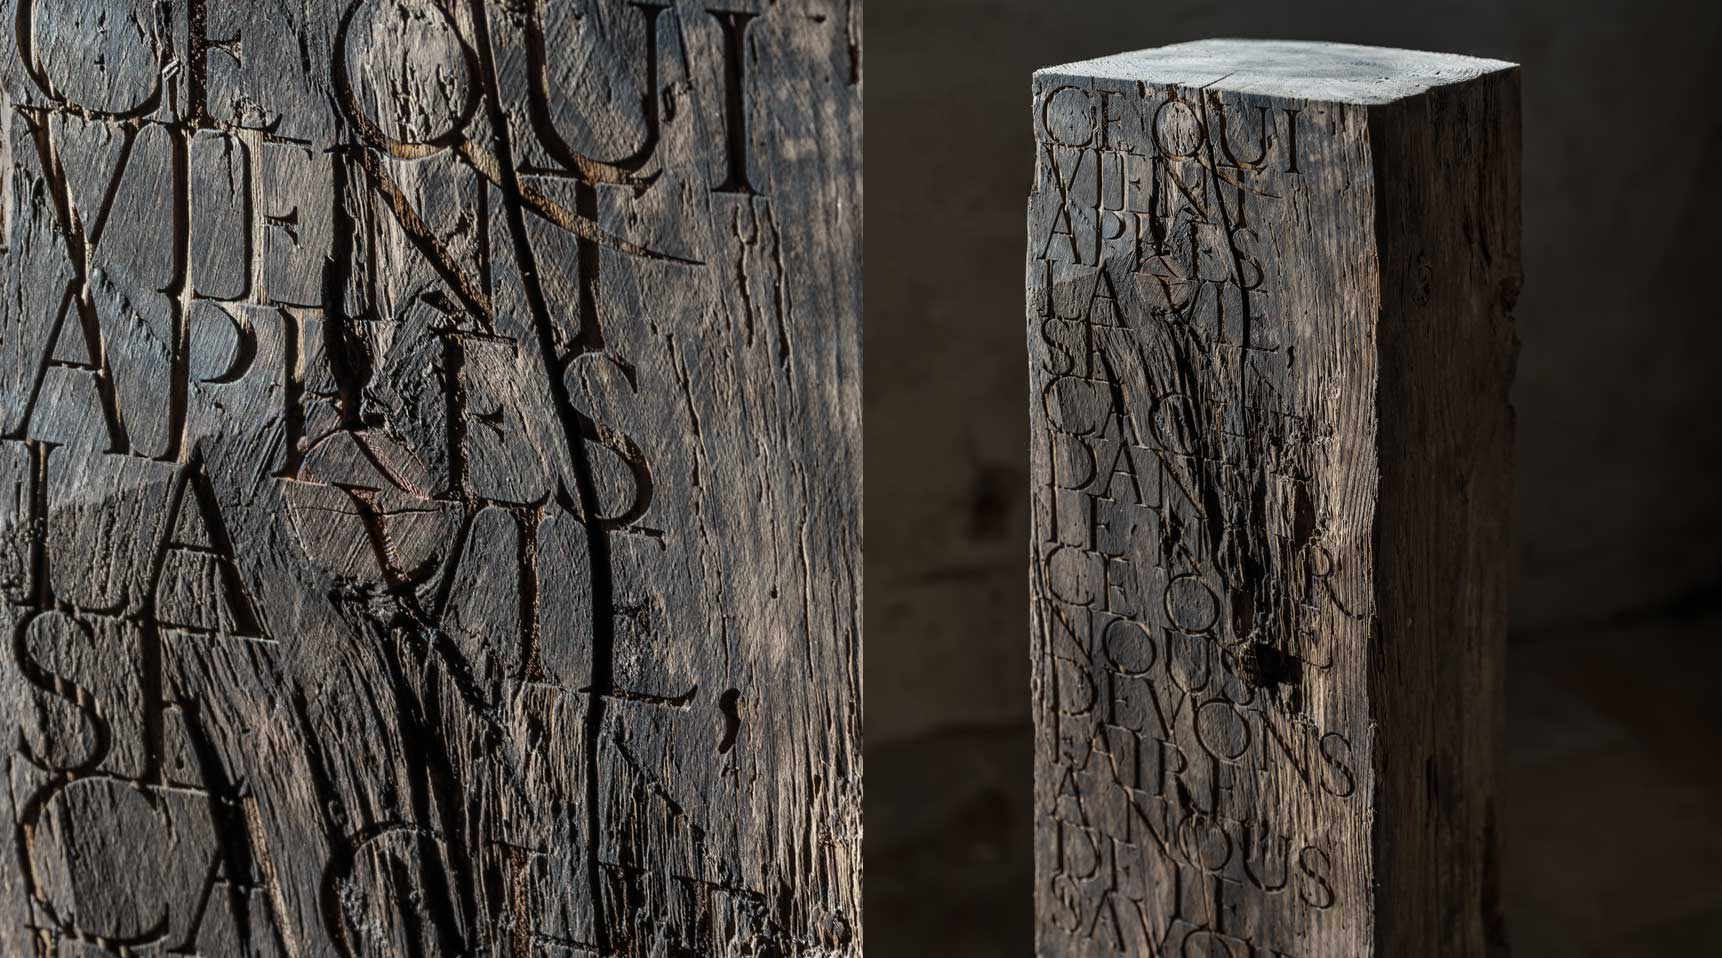 Monolith – Quote from Emmanuel Kant, 2019 – Hundred year old cedar wood with engraved lettering, 96 x 18,3 x 18,3 cm